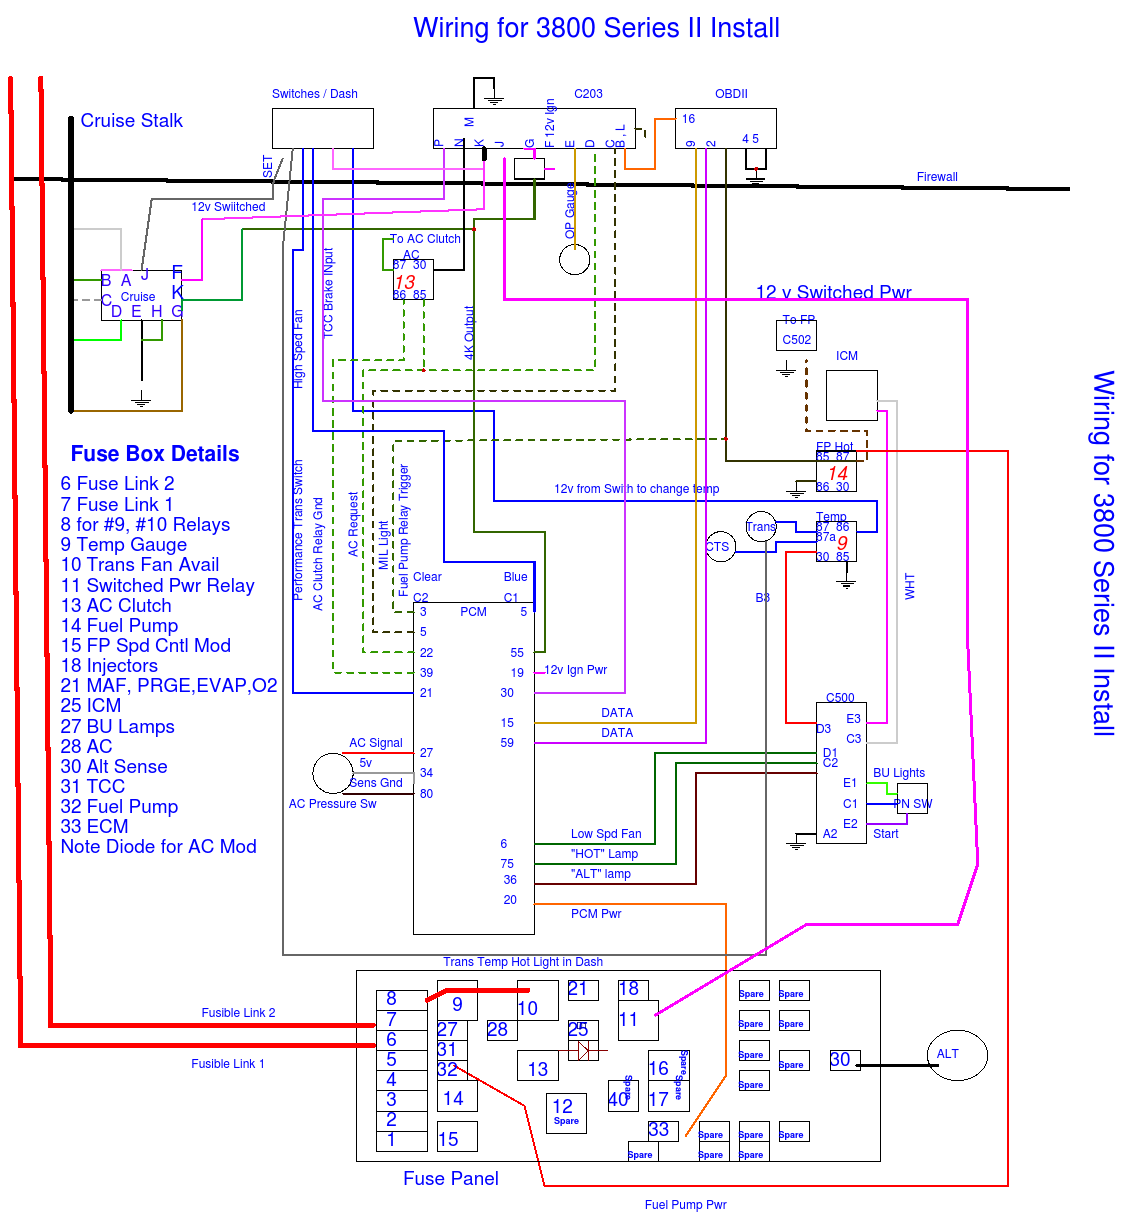 3800_Series_II_Wiring_B 94114383e10345ecab416fa0c37580bf 3800 series 2 wiring diagram wiring diagrams 3800 series 2 stand alone wiring harness at bakdesigns.co